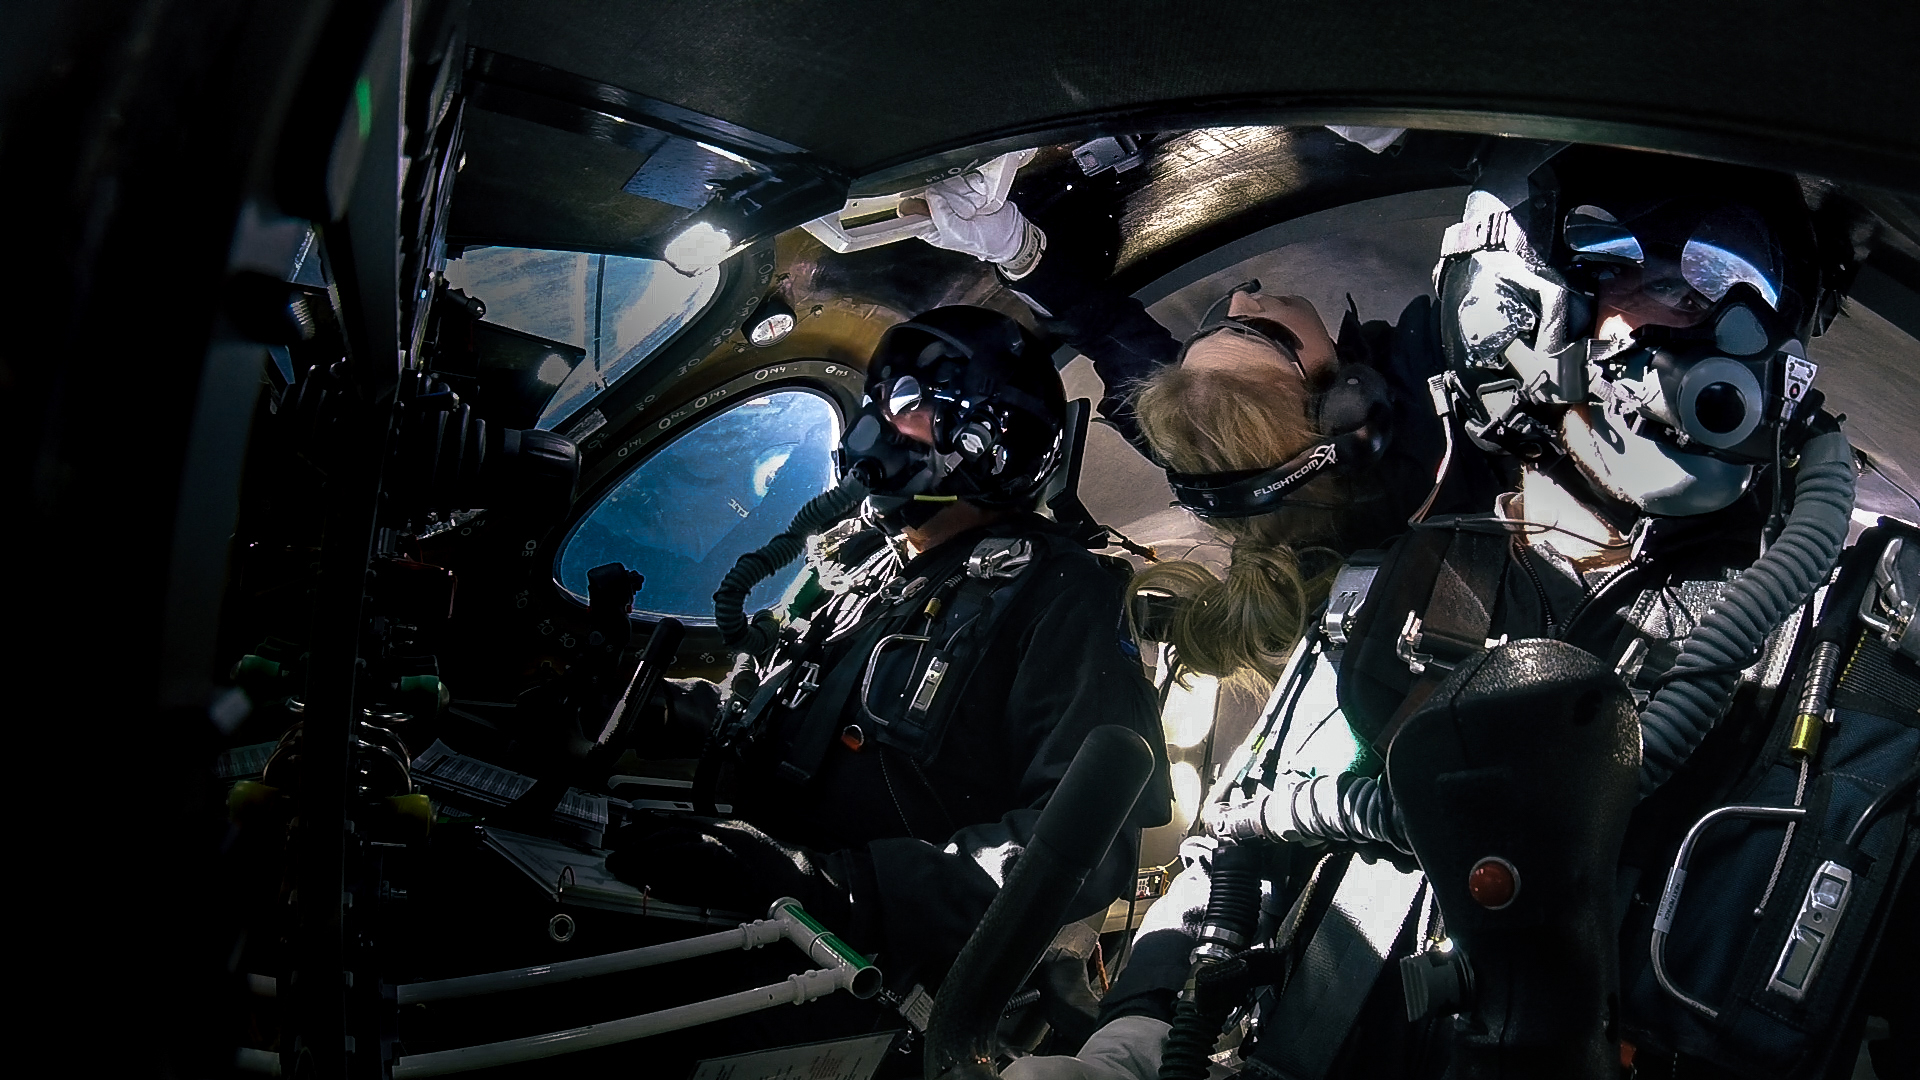 Virgin Galactic makes record breaking second space flight with 3 crew aboard